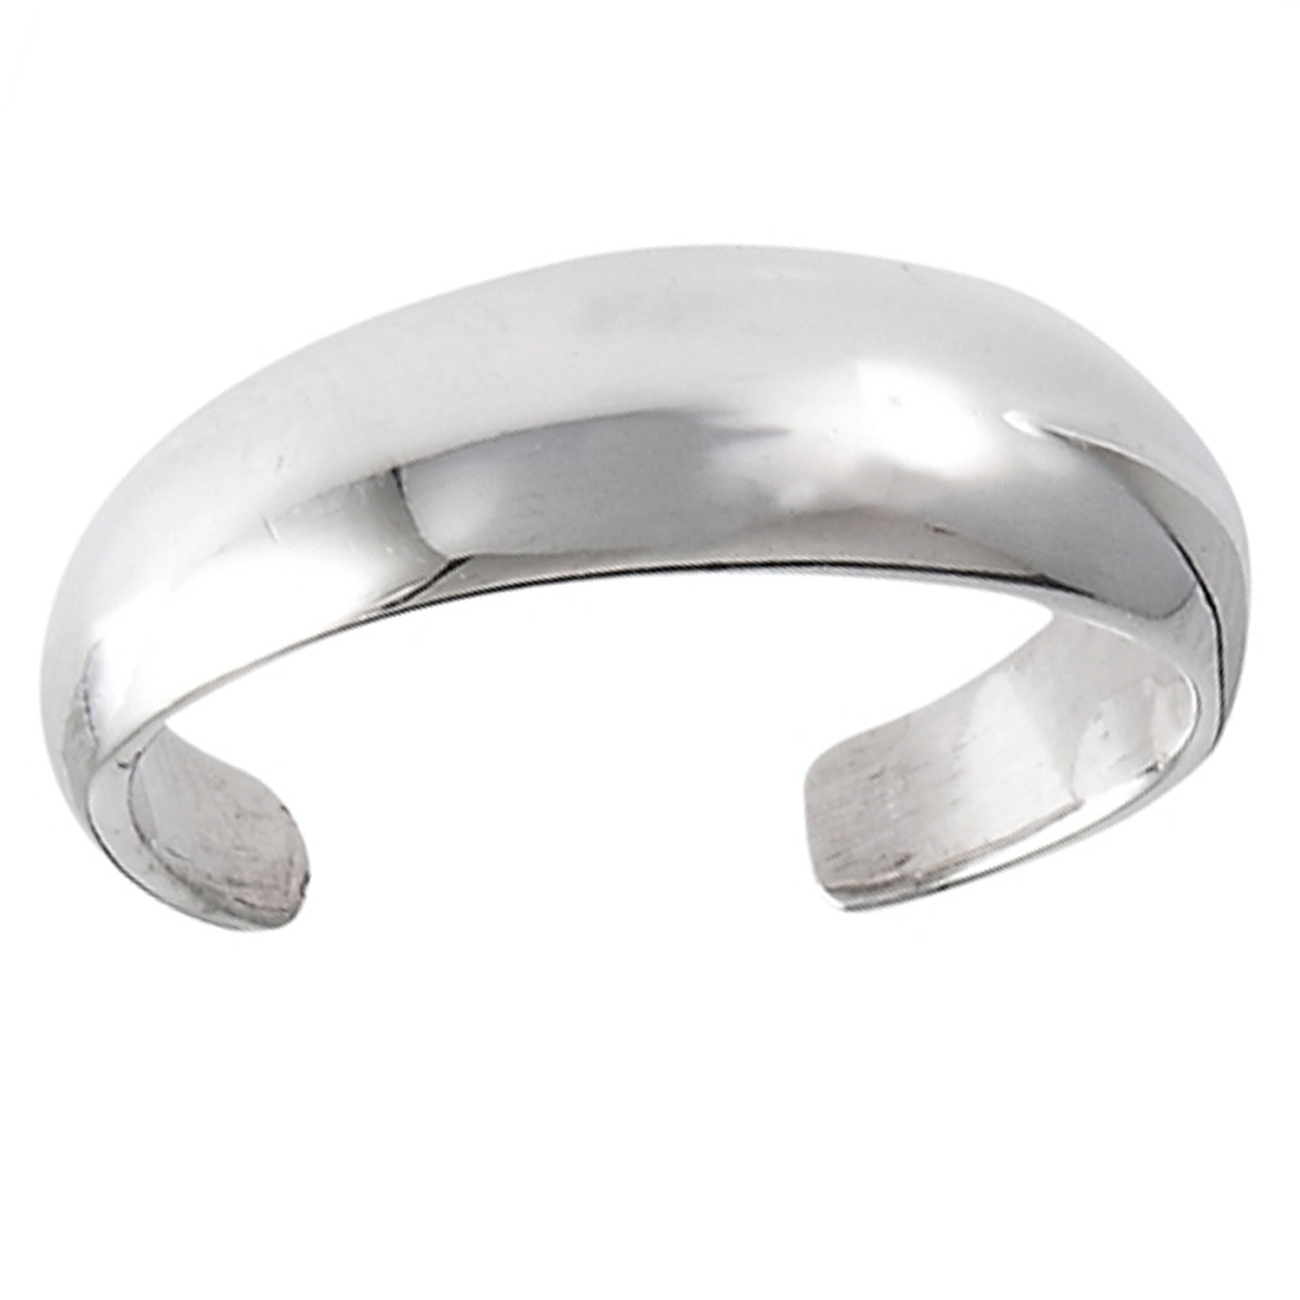 Convex Surface Tapered Plain Adjustable Toe Ring